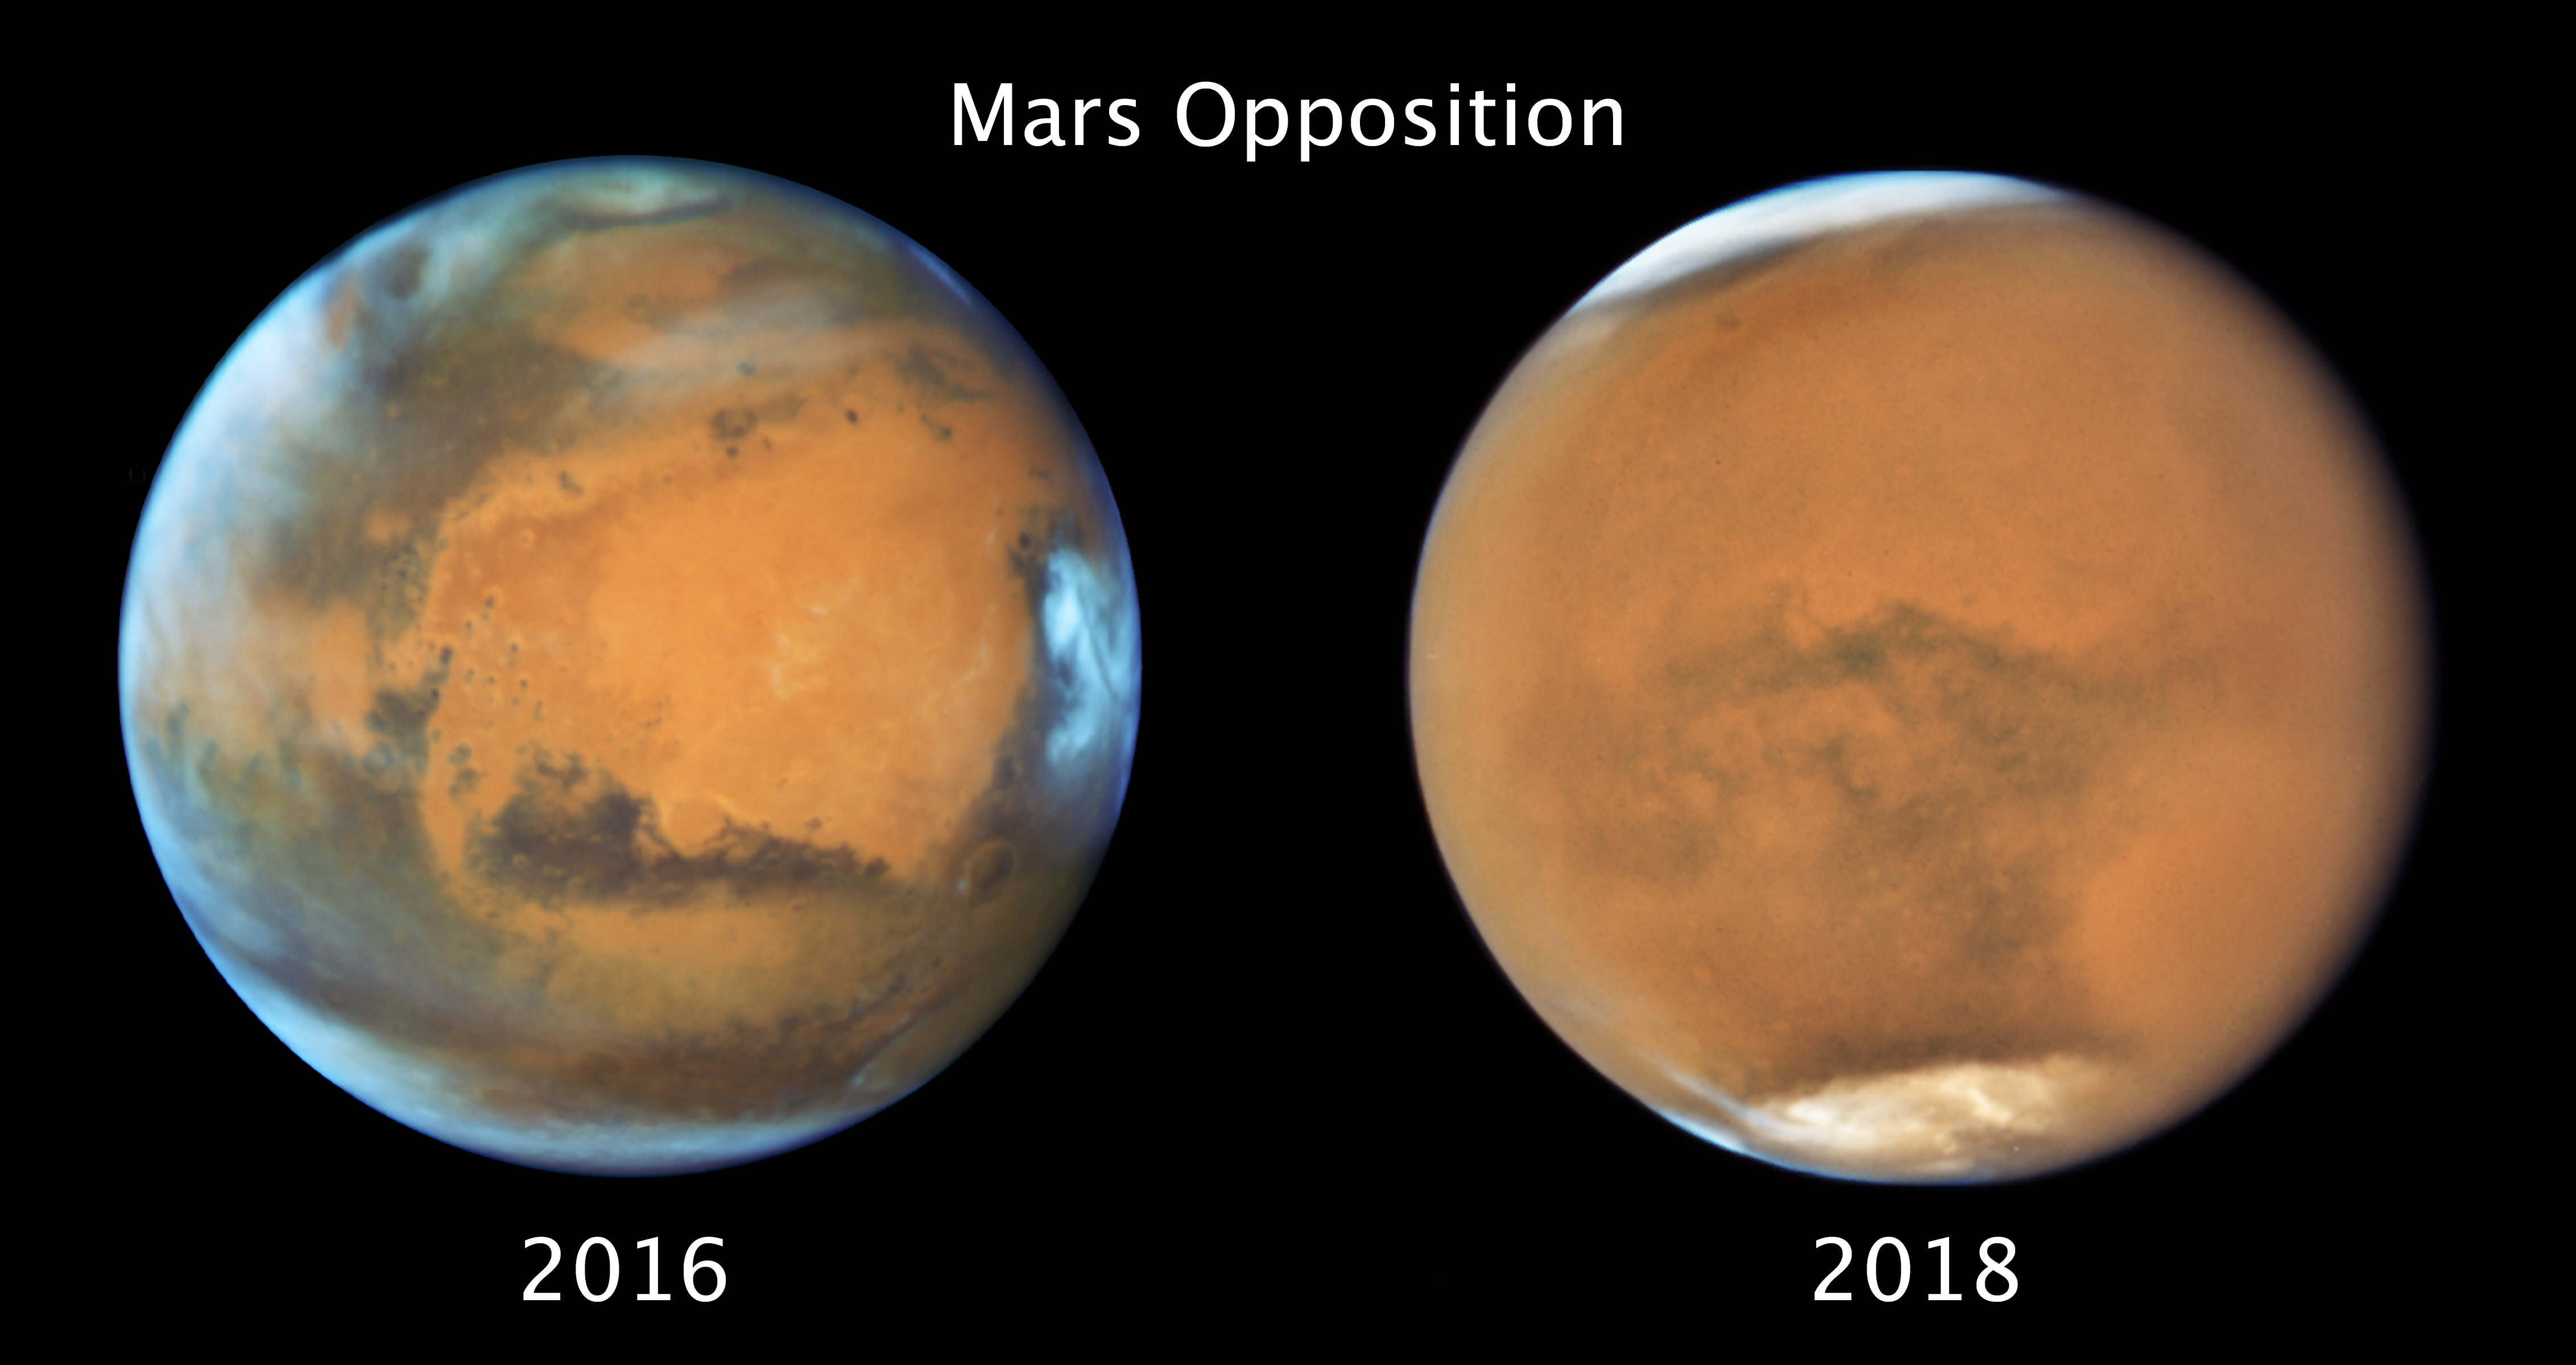 On Mars discovered the first extraterrestrial body of water